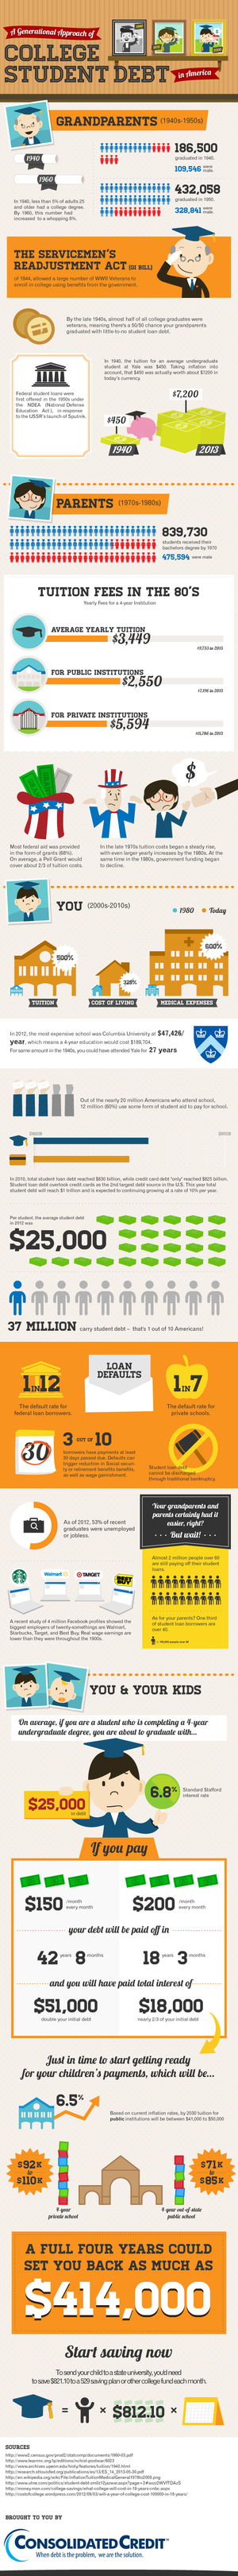 student loan infographic